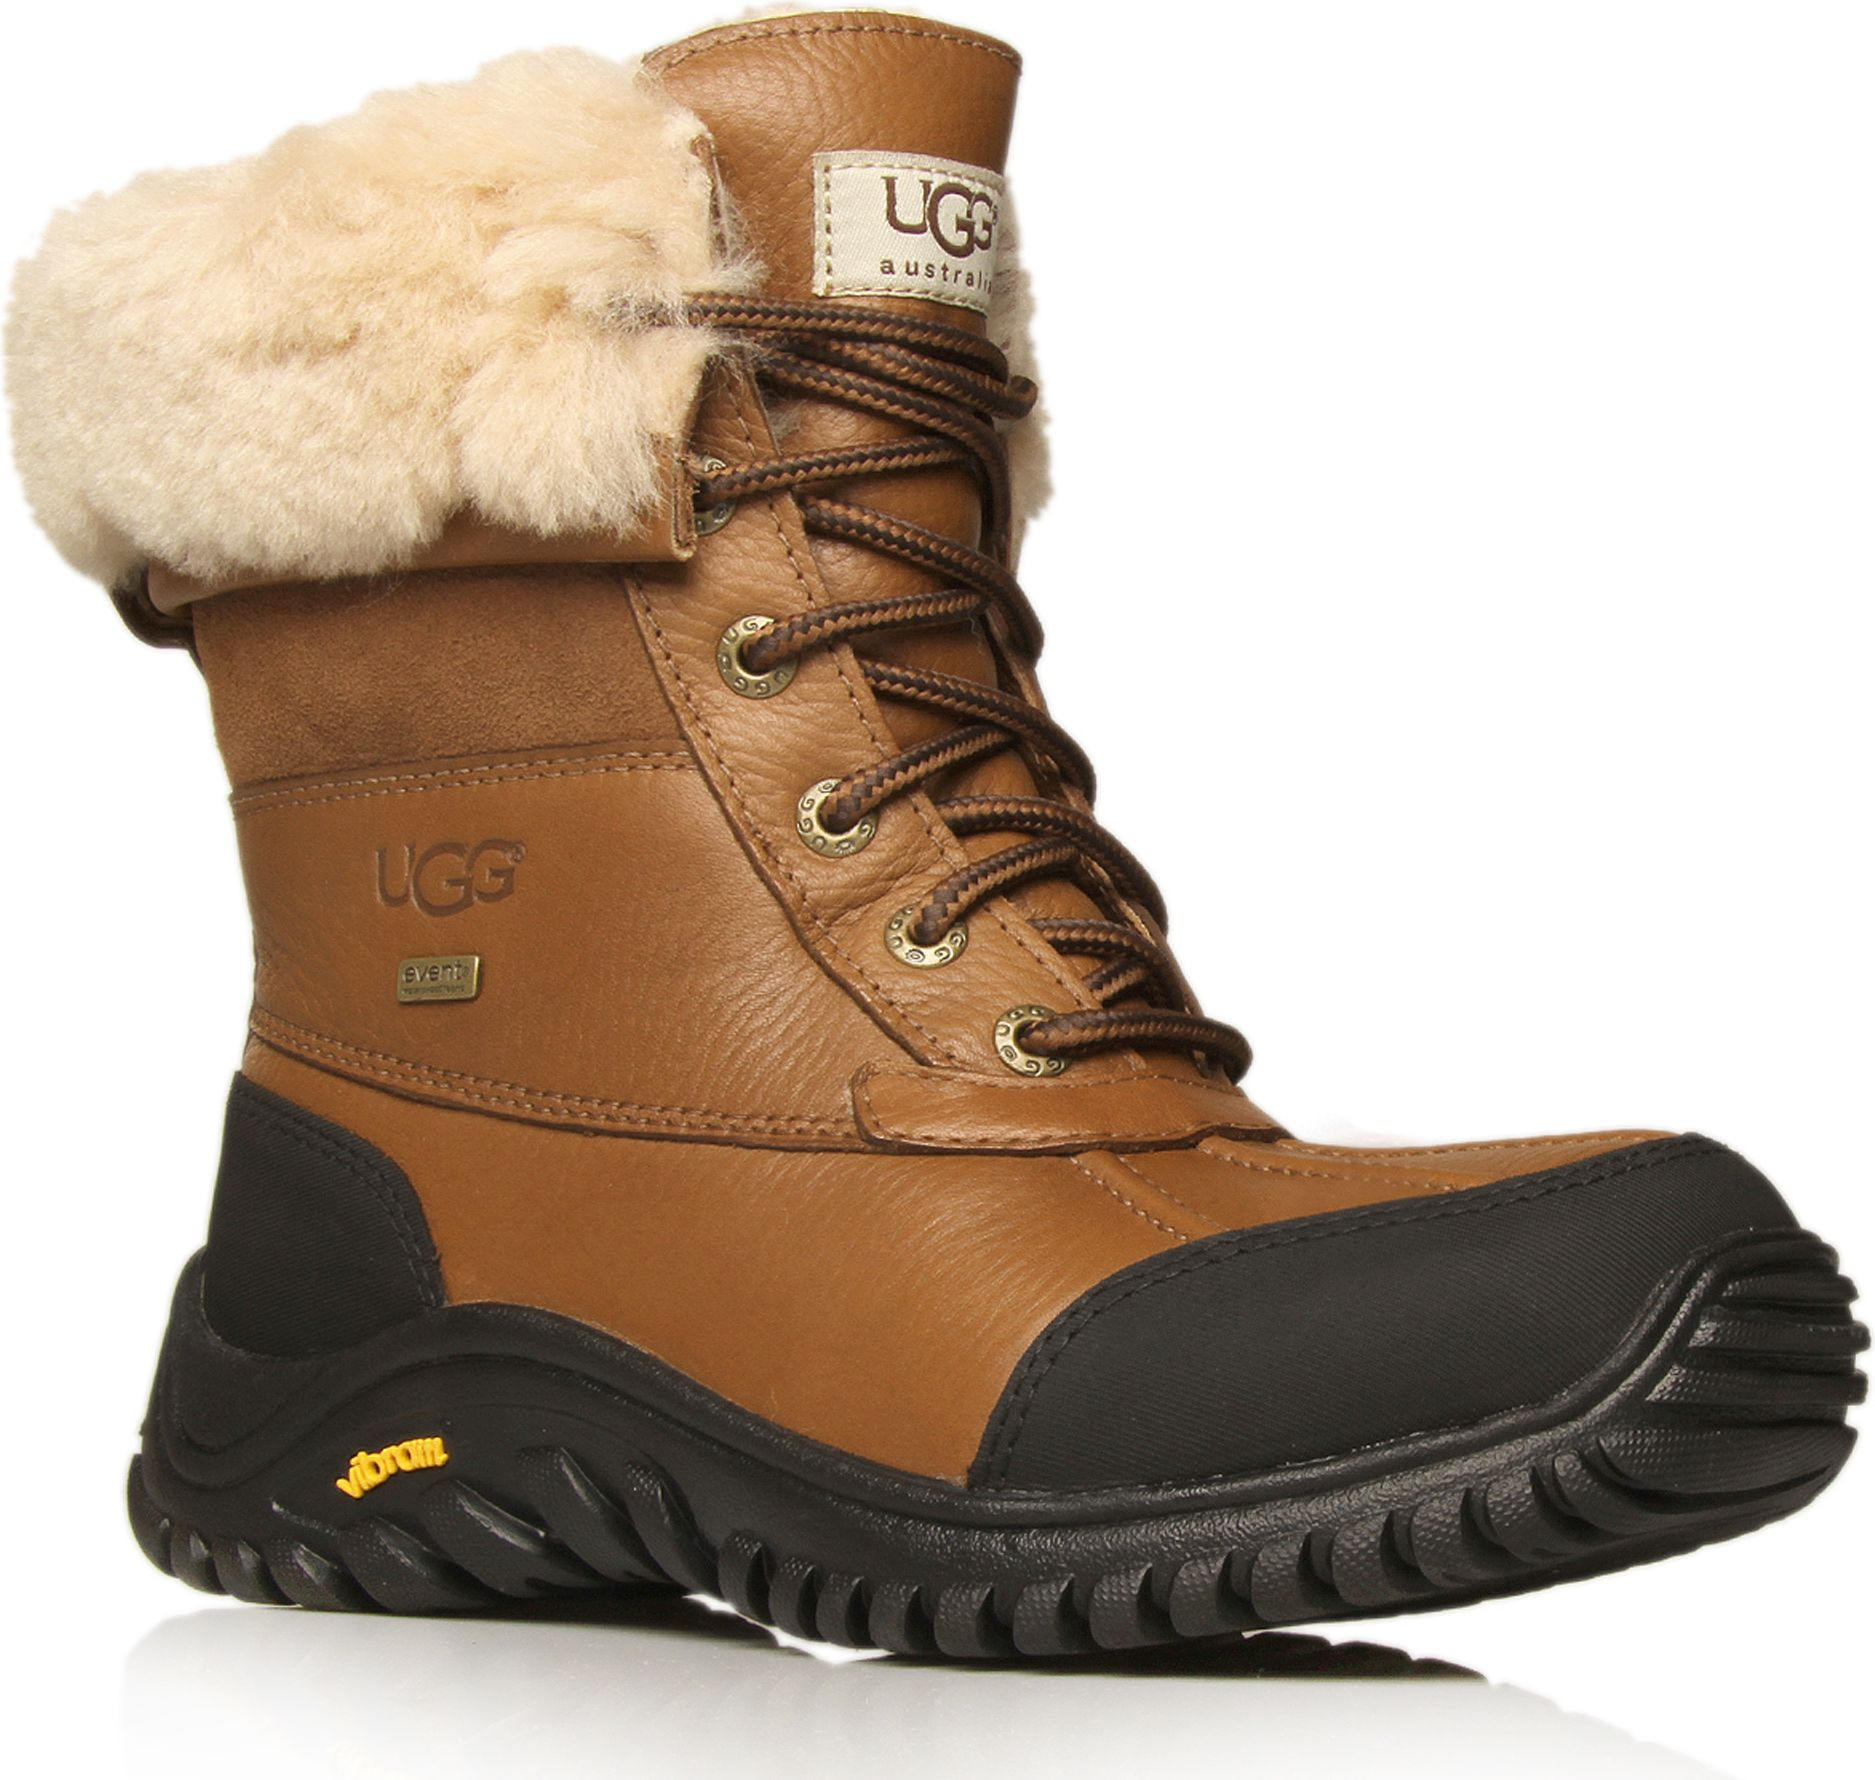 Office Ugg Boots Kids No Ta Your Best Choose